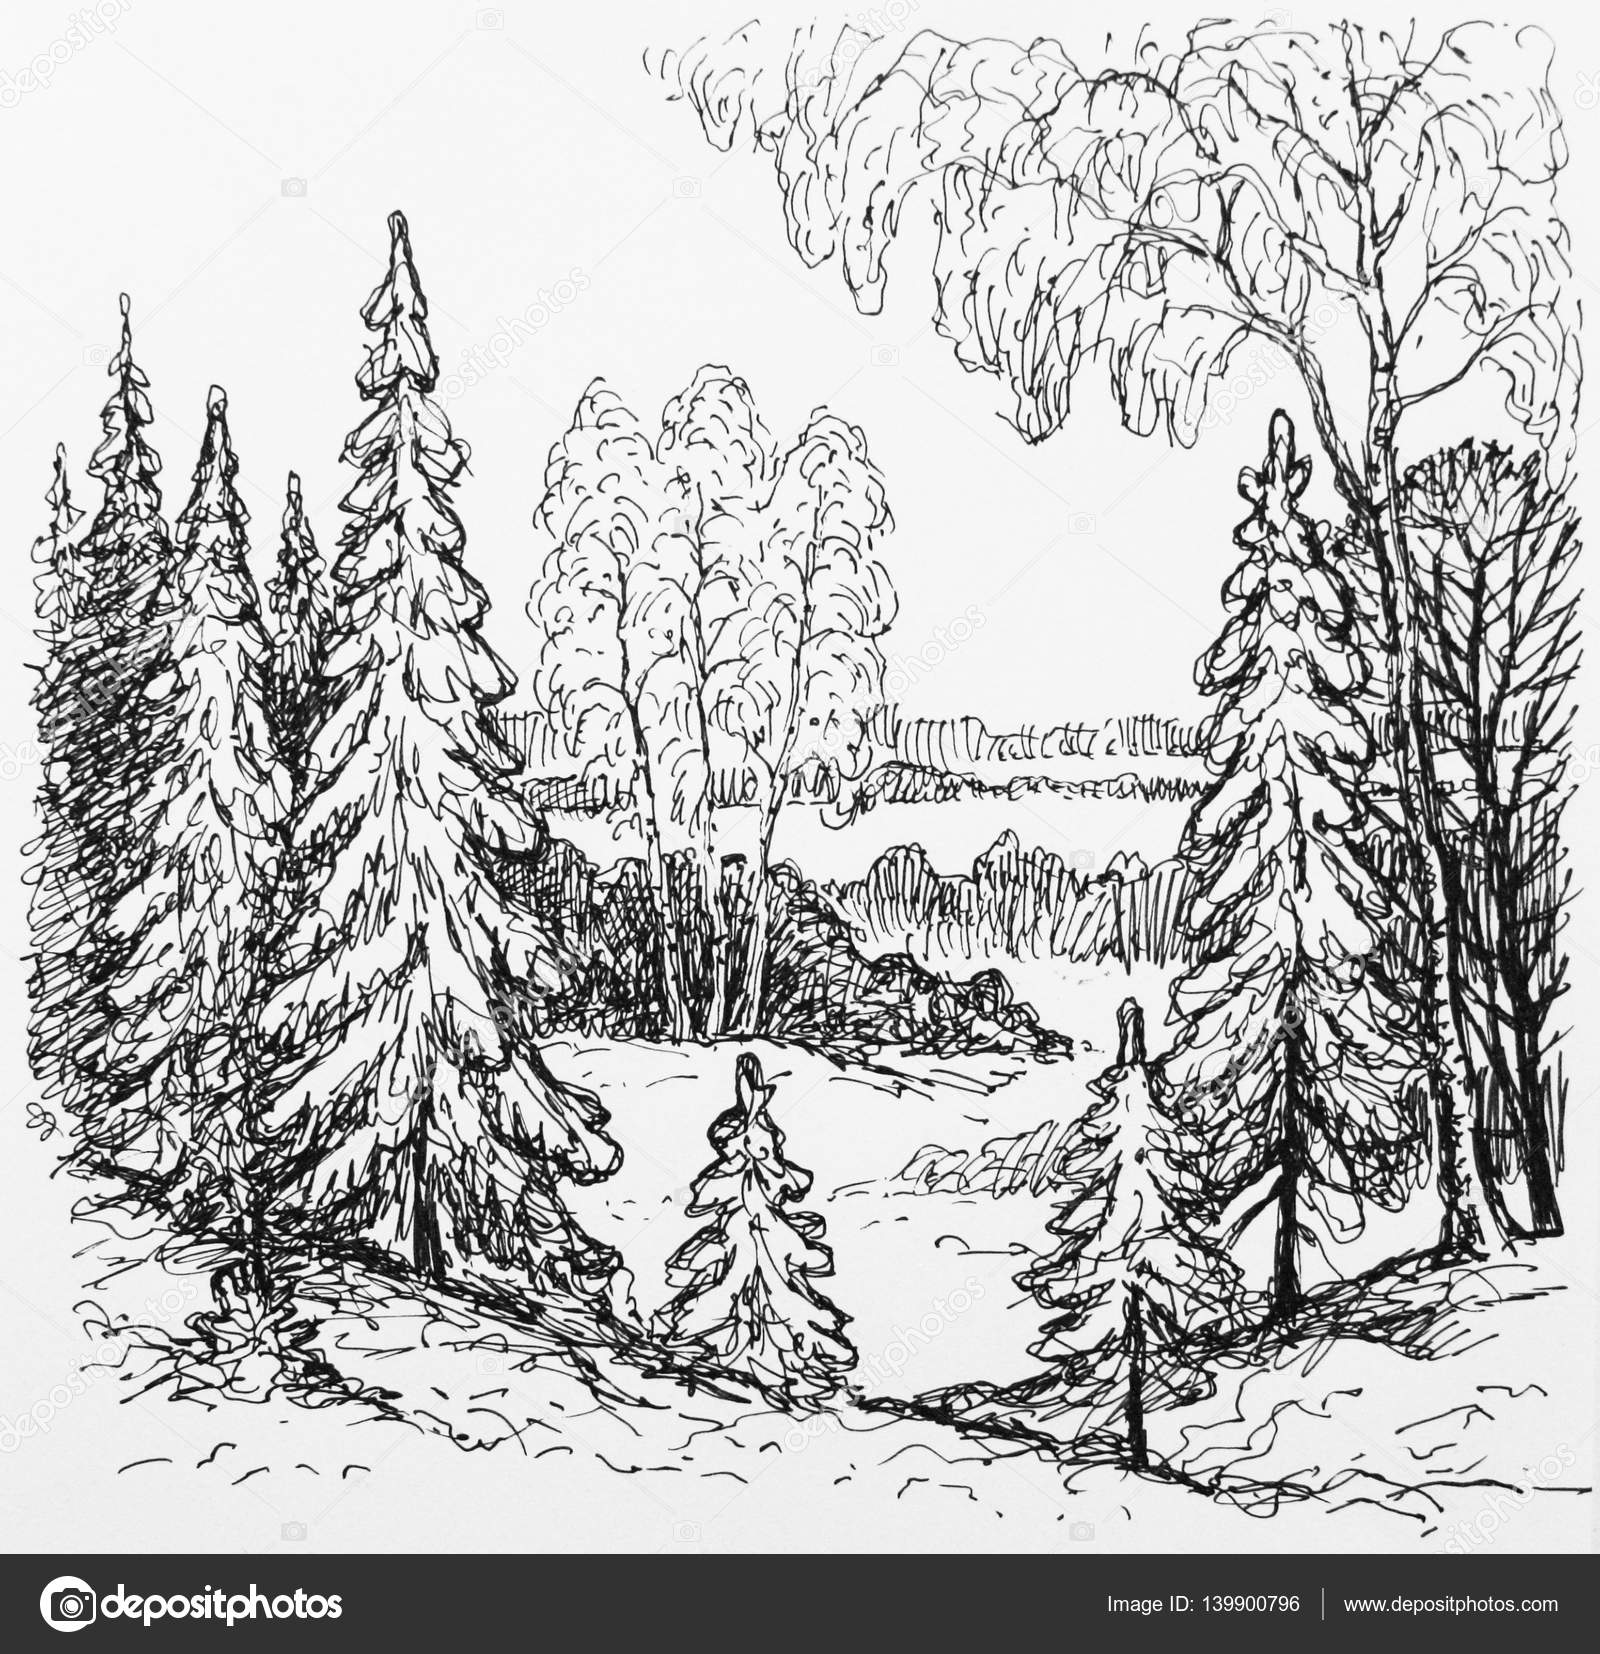 Pictures Sketches A Forest Sketches Of The Forest Trees Stock Photo C Mubaister Gmail Com 139900796